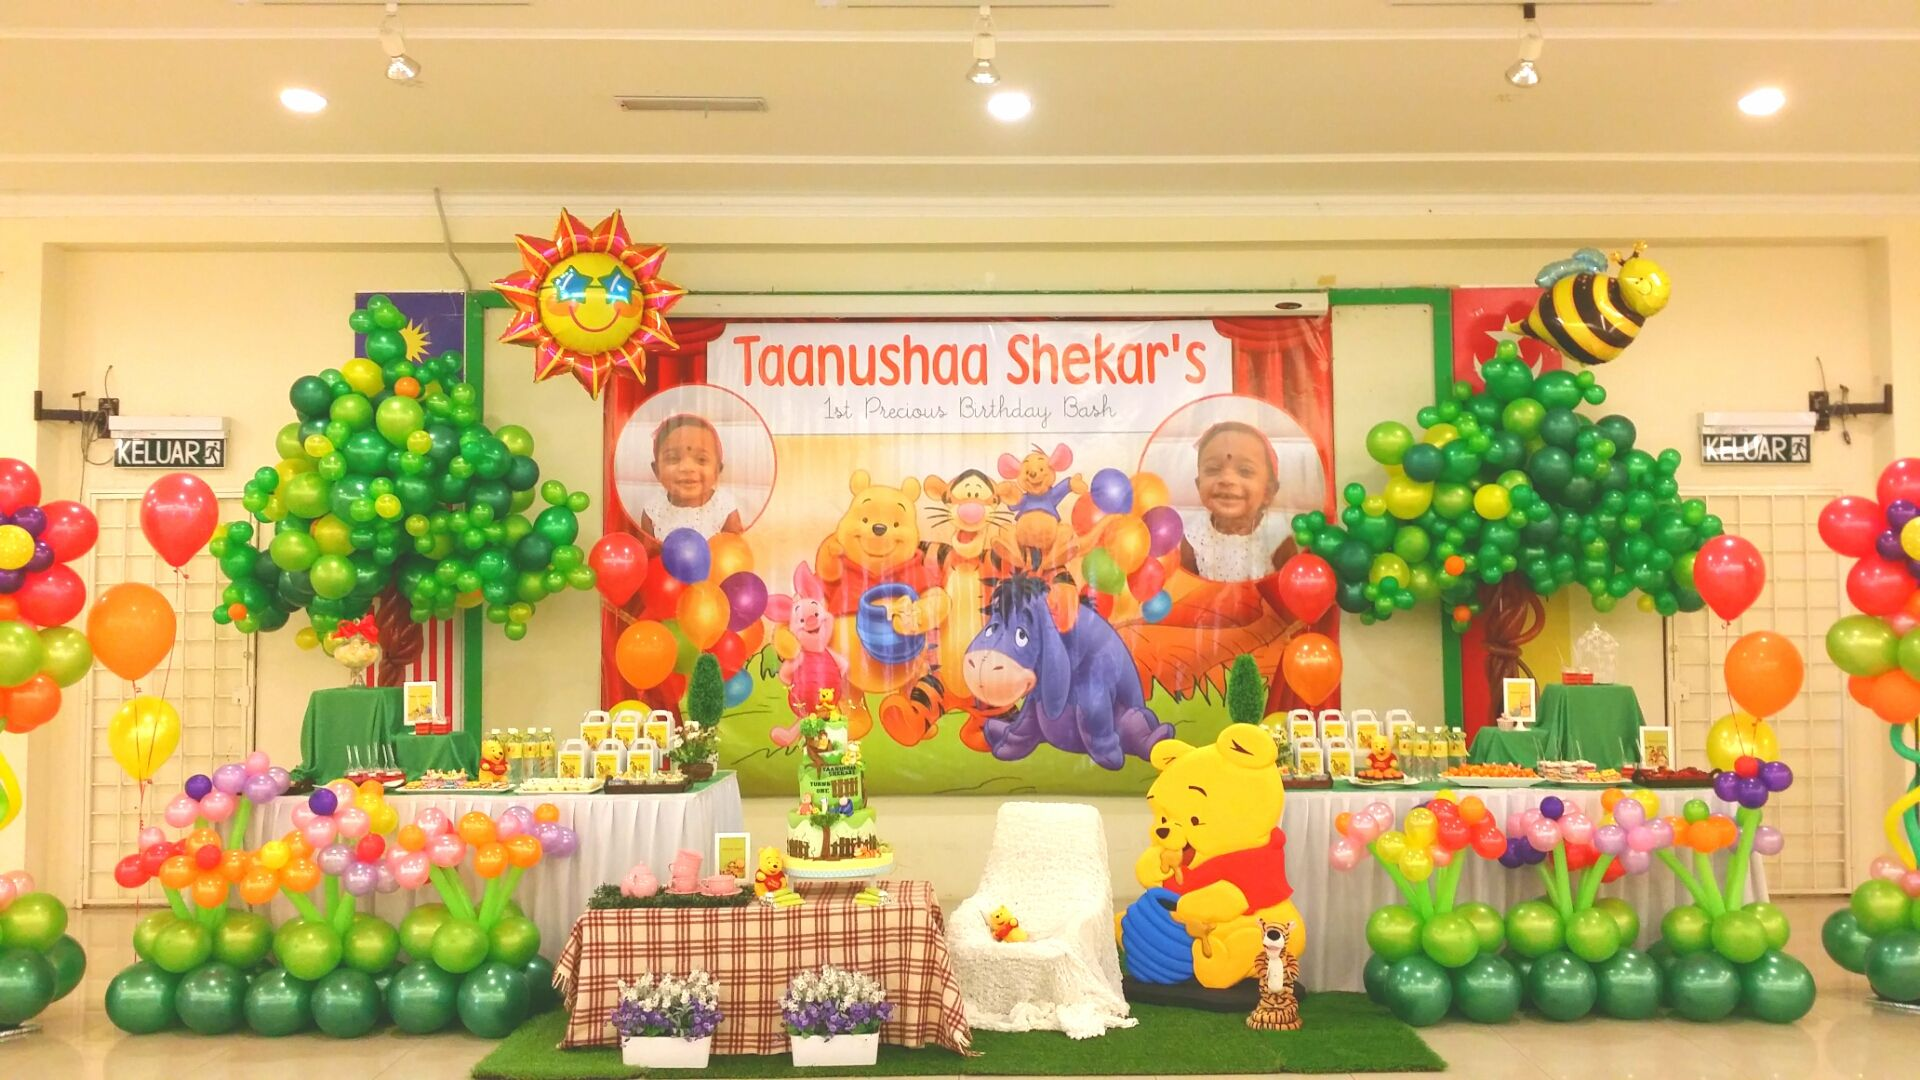 1st birthday party stage decorations - Google Search | 1st Birthday ...